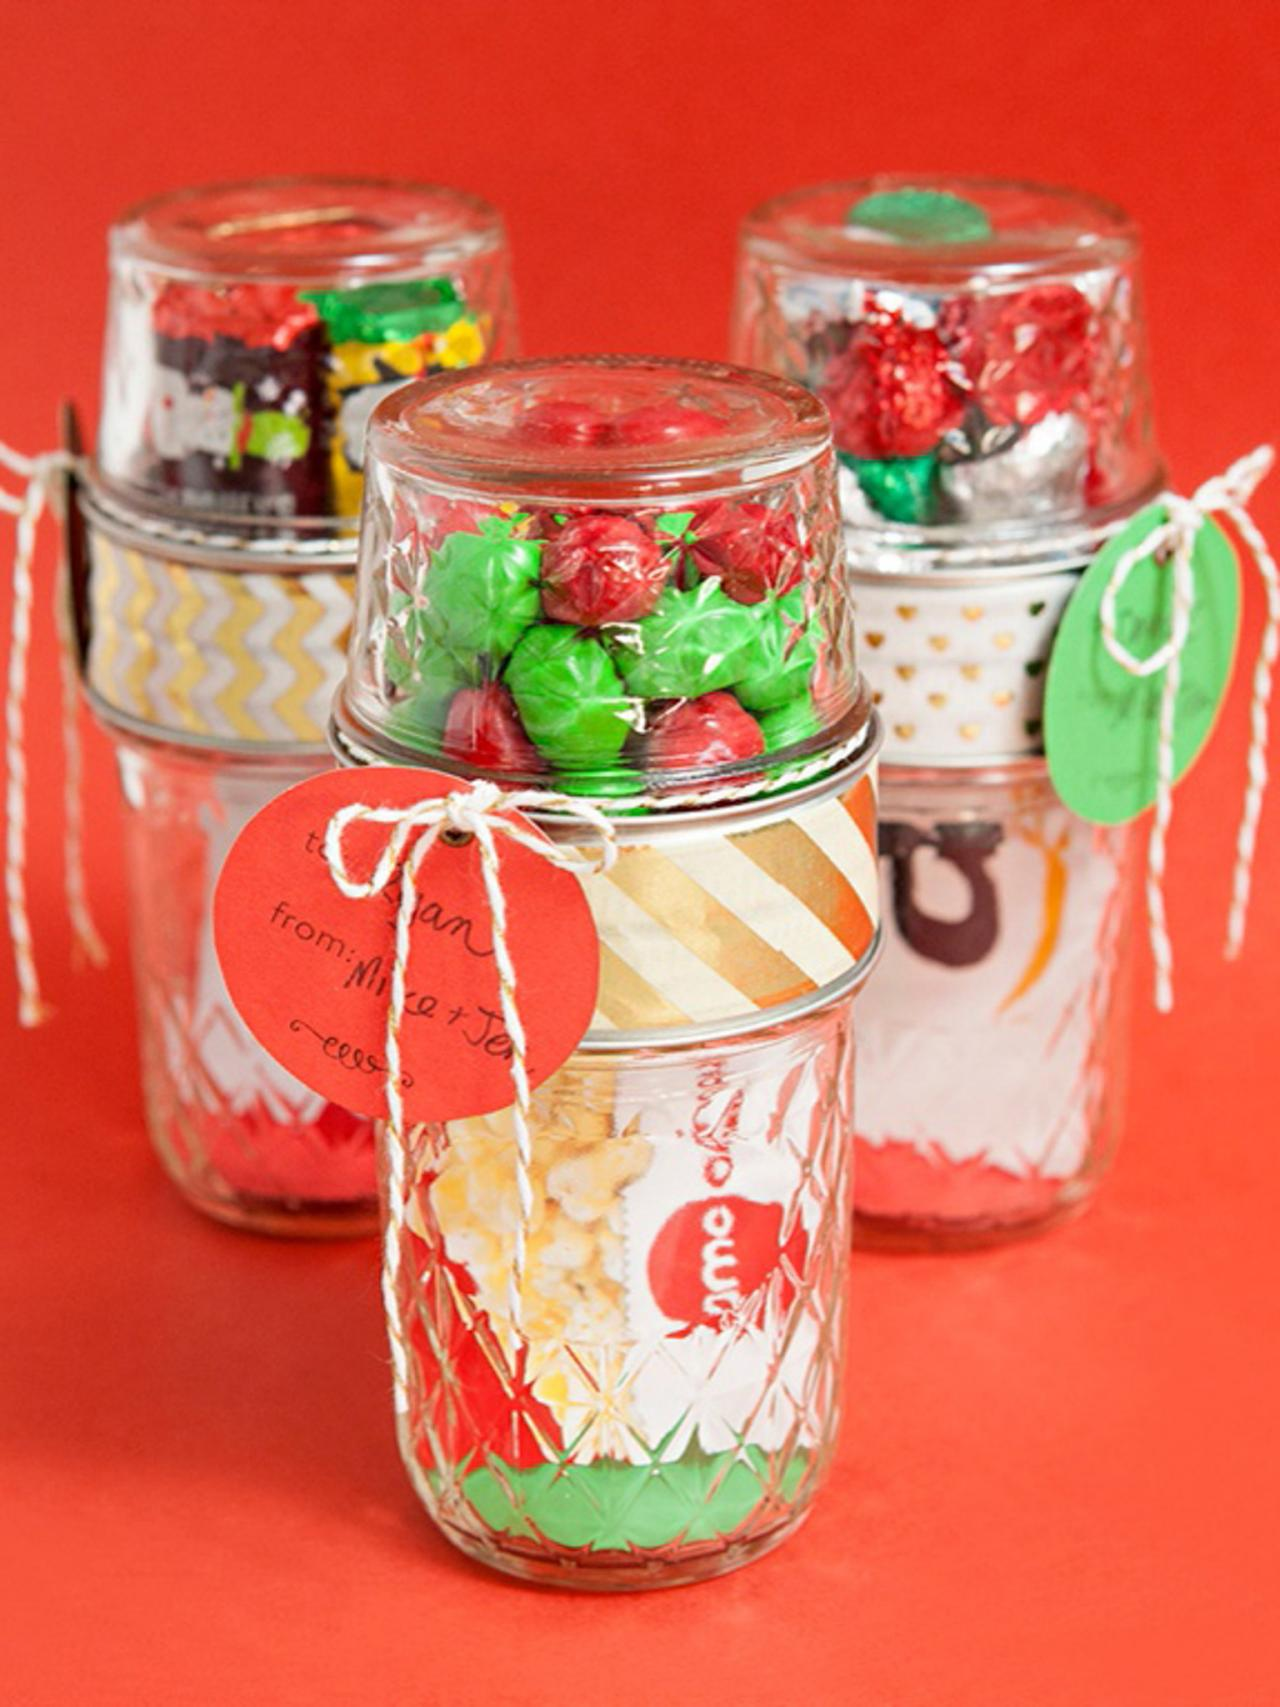 Christmas Gift Ideas in Mason Jars | HGTV\'s Decorating & Design ...